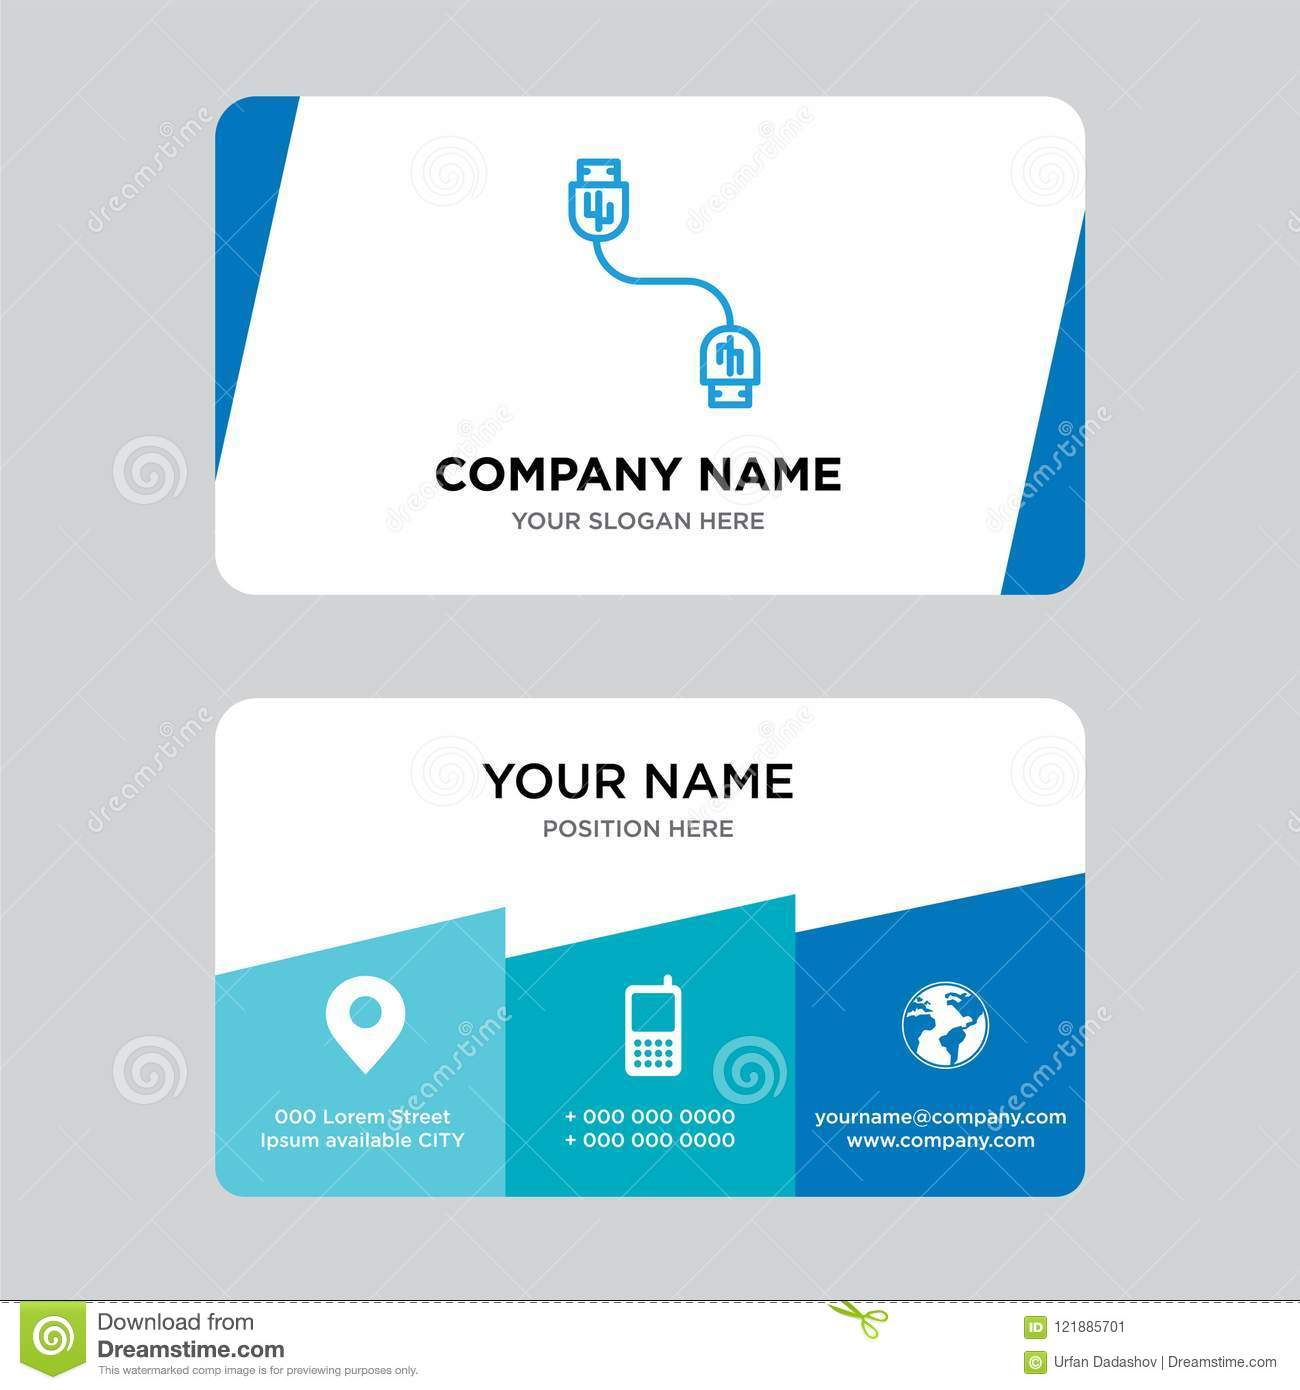 Usb Cable Business Card Design Template Visiting For Your Company